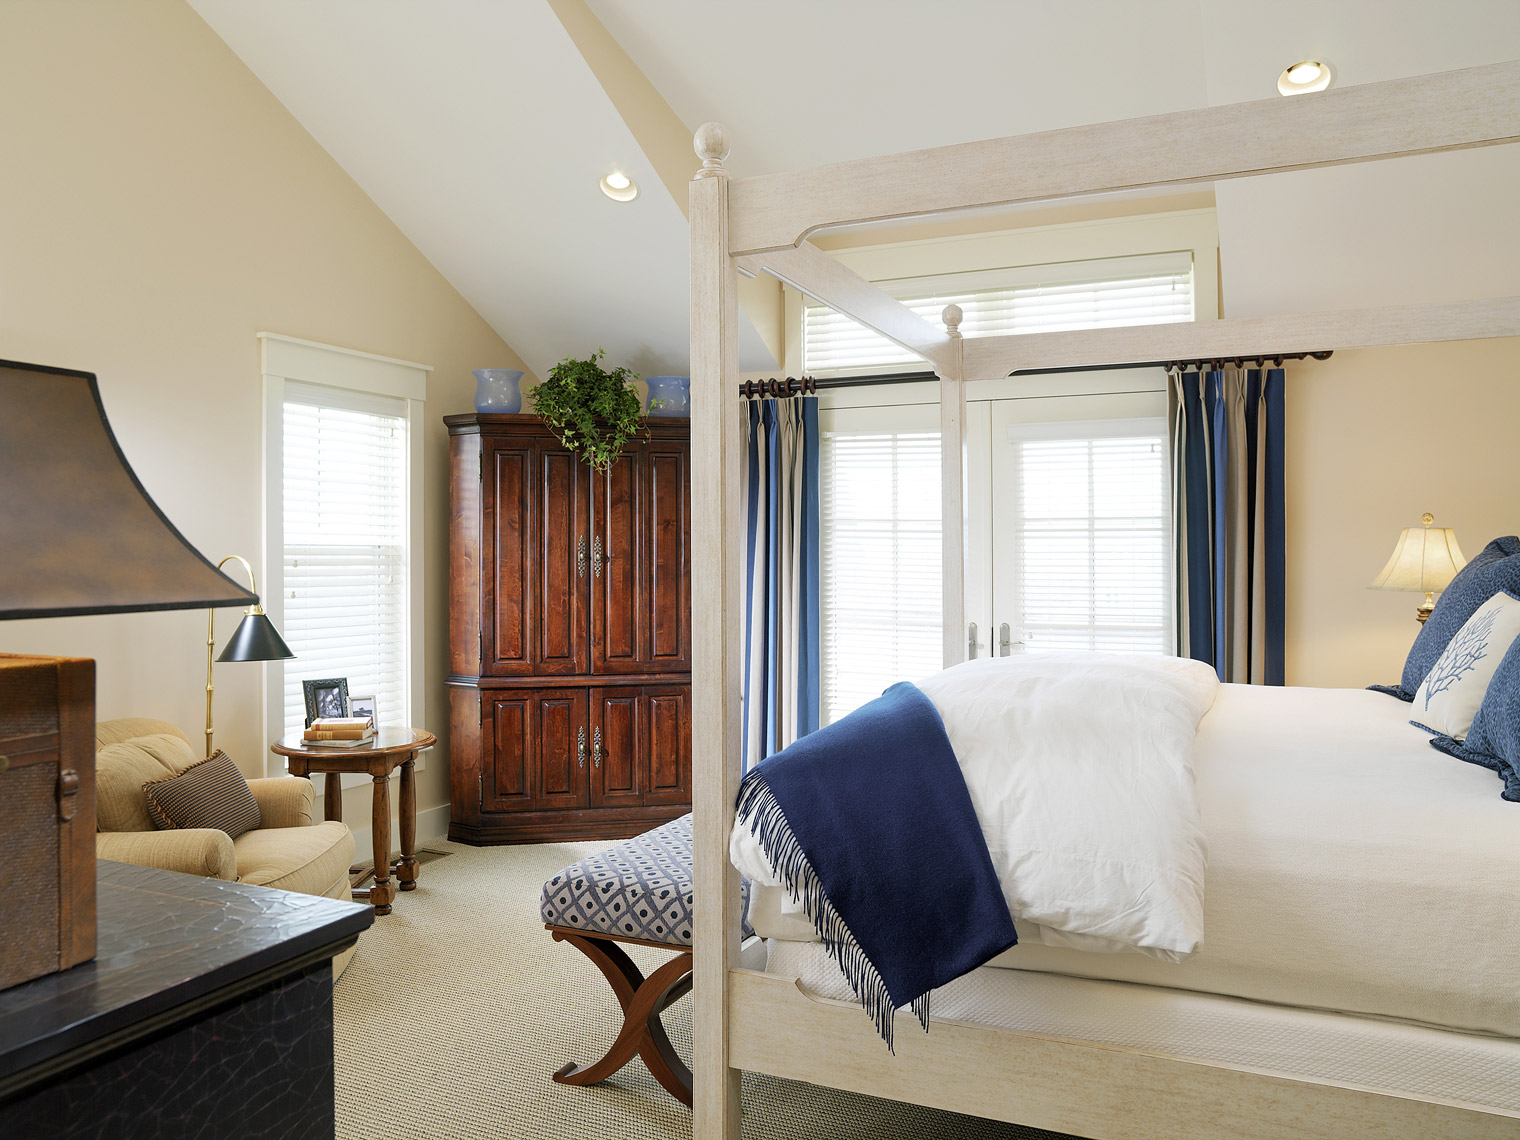 Waterfront vacation home on Narragansett Bay, Interior Design by Kenneth E. Hurd & Associates